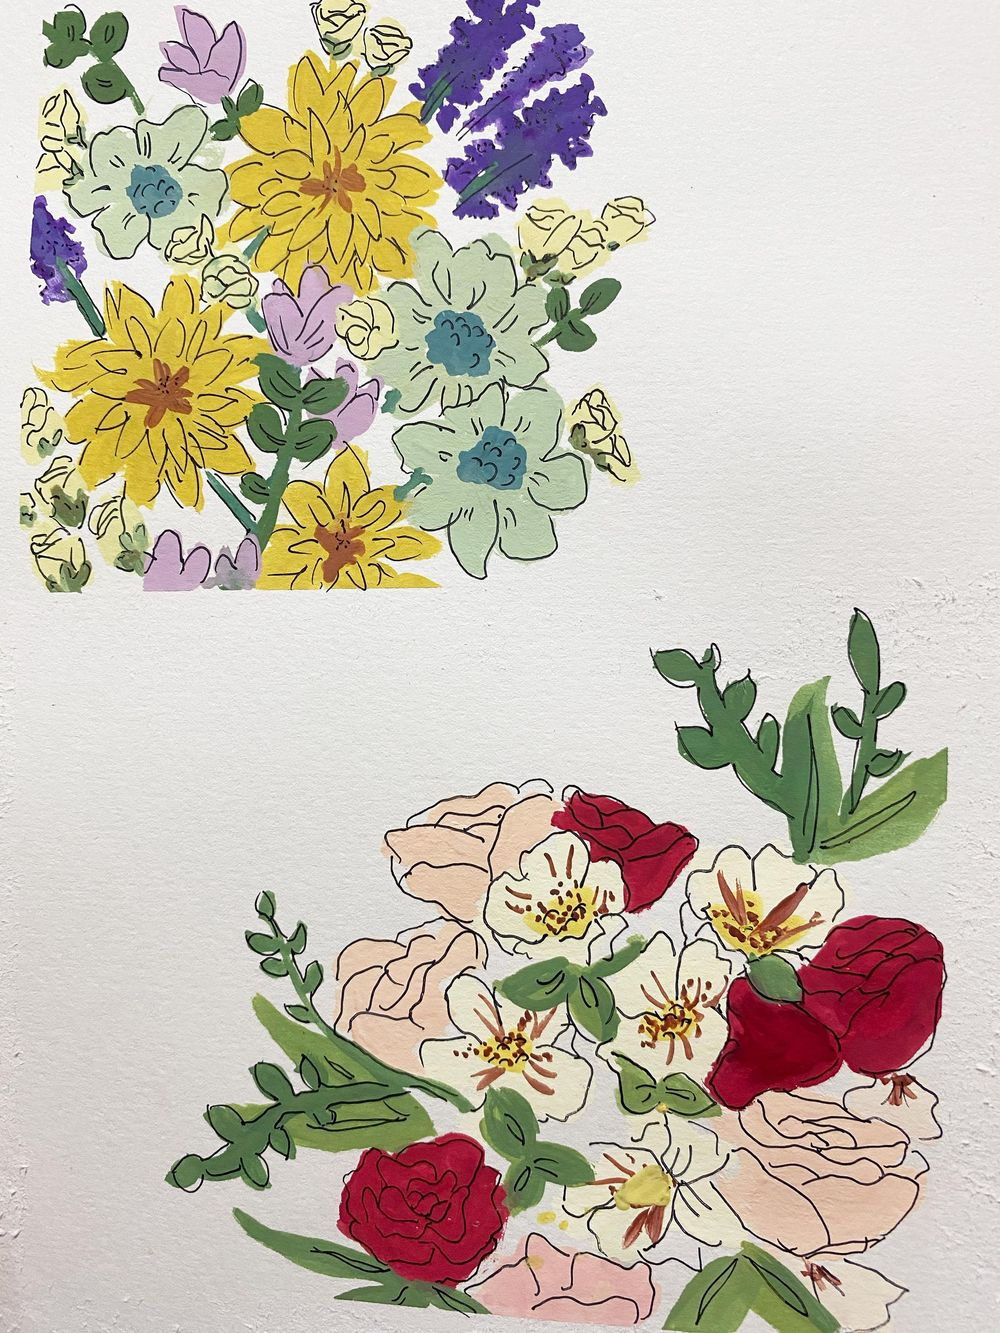 Wildflower bouquets - image 1 - student project